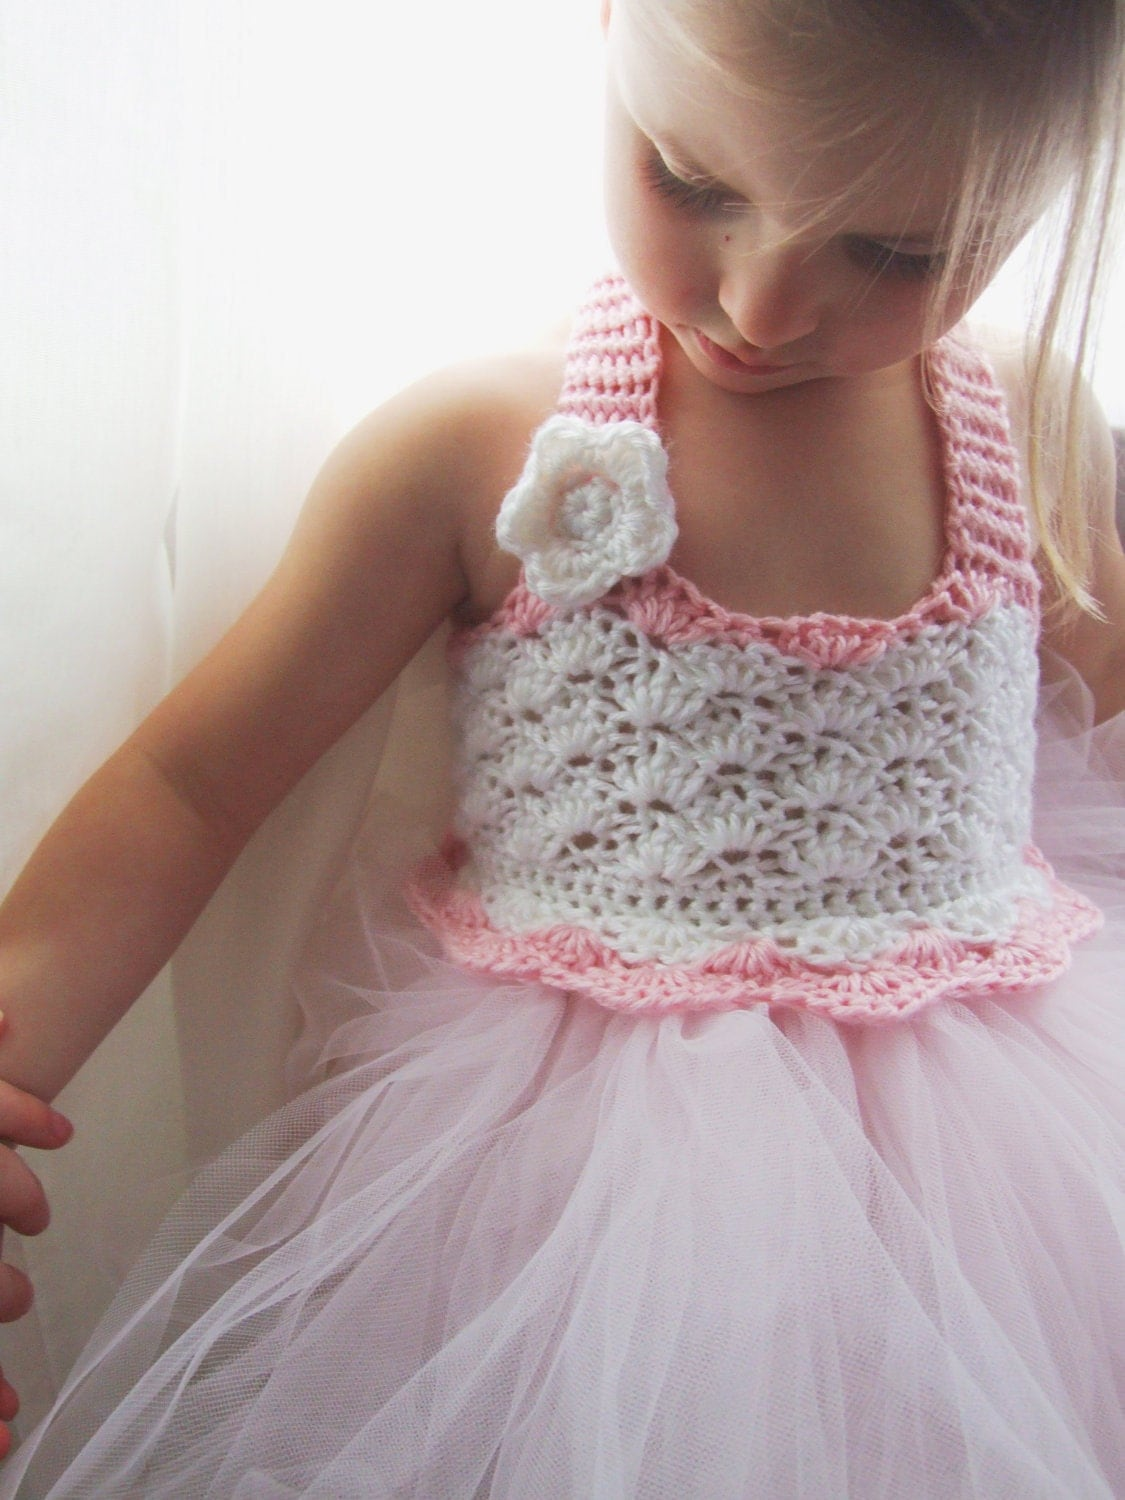 Crochet Baby Tutu Dress Pattern : Team EtsyBABY?: An Interview with Morgan from King Soleil